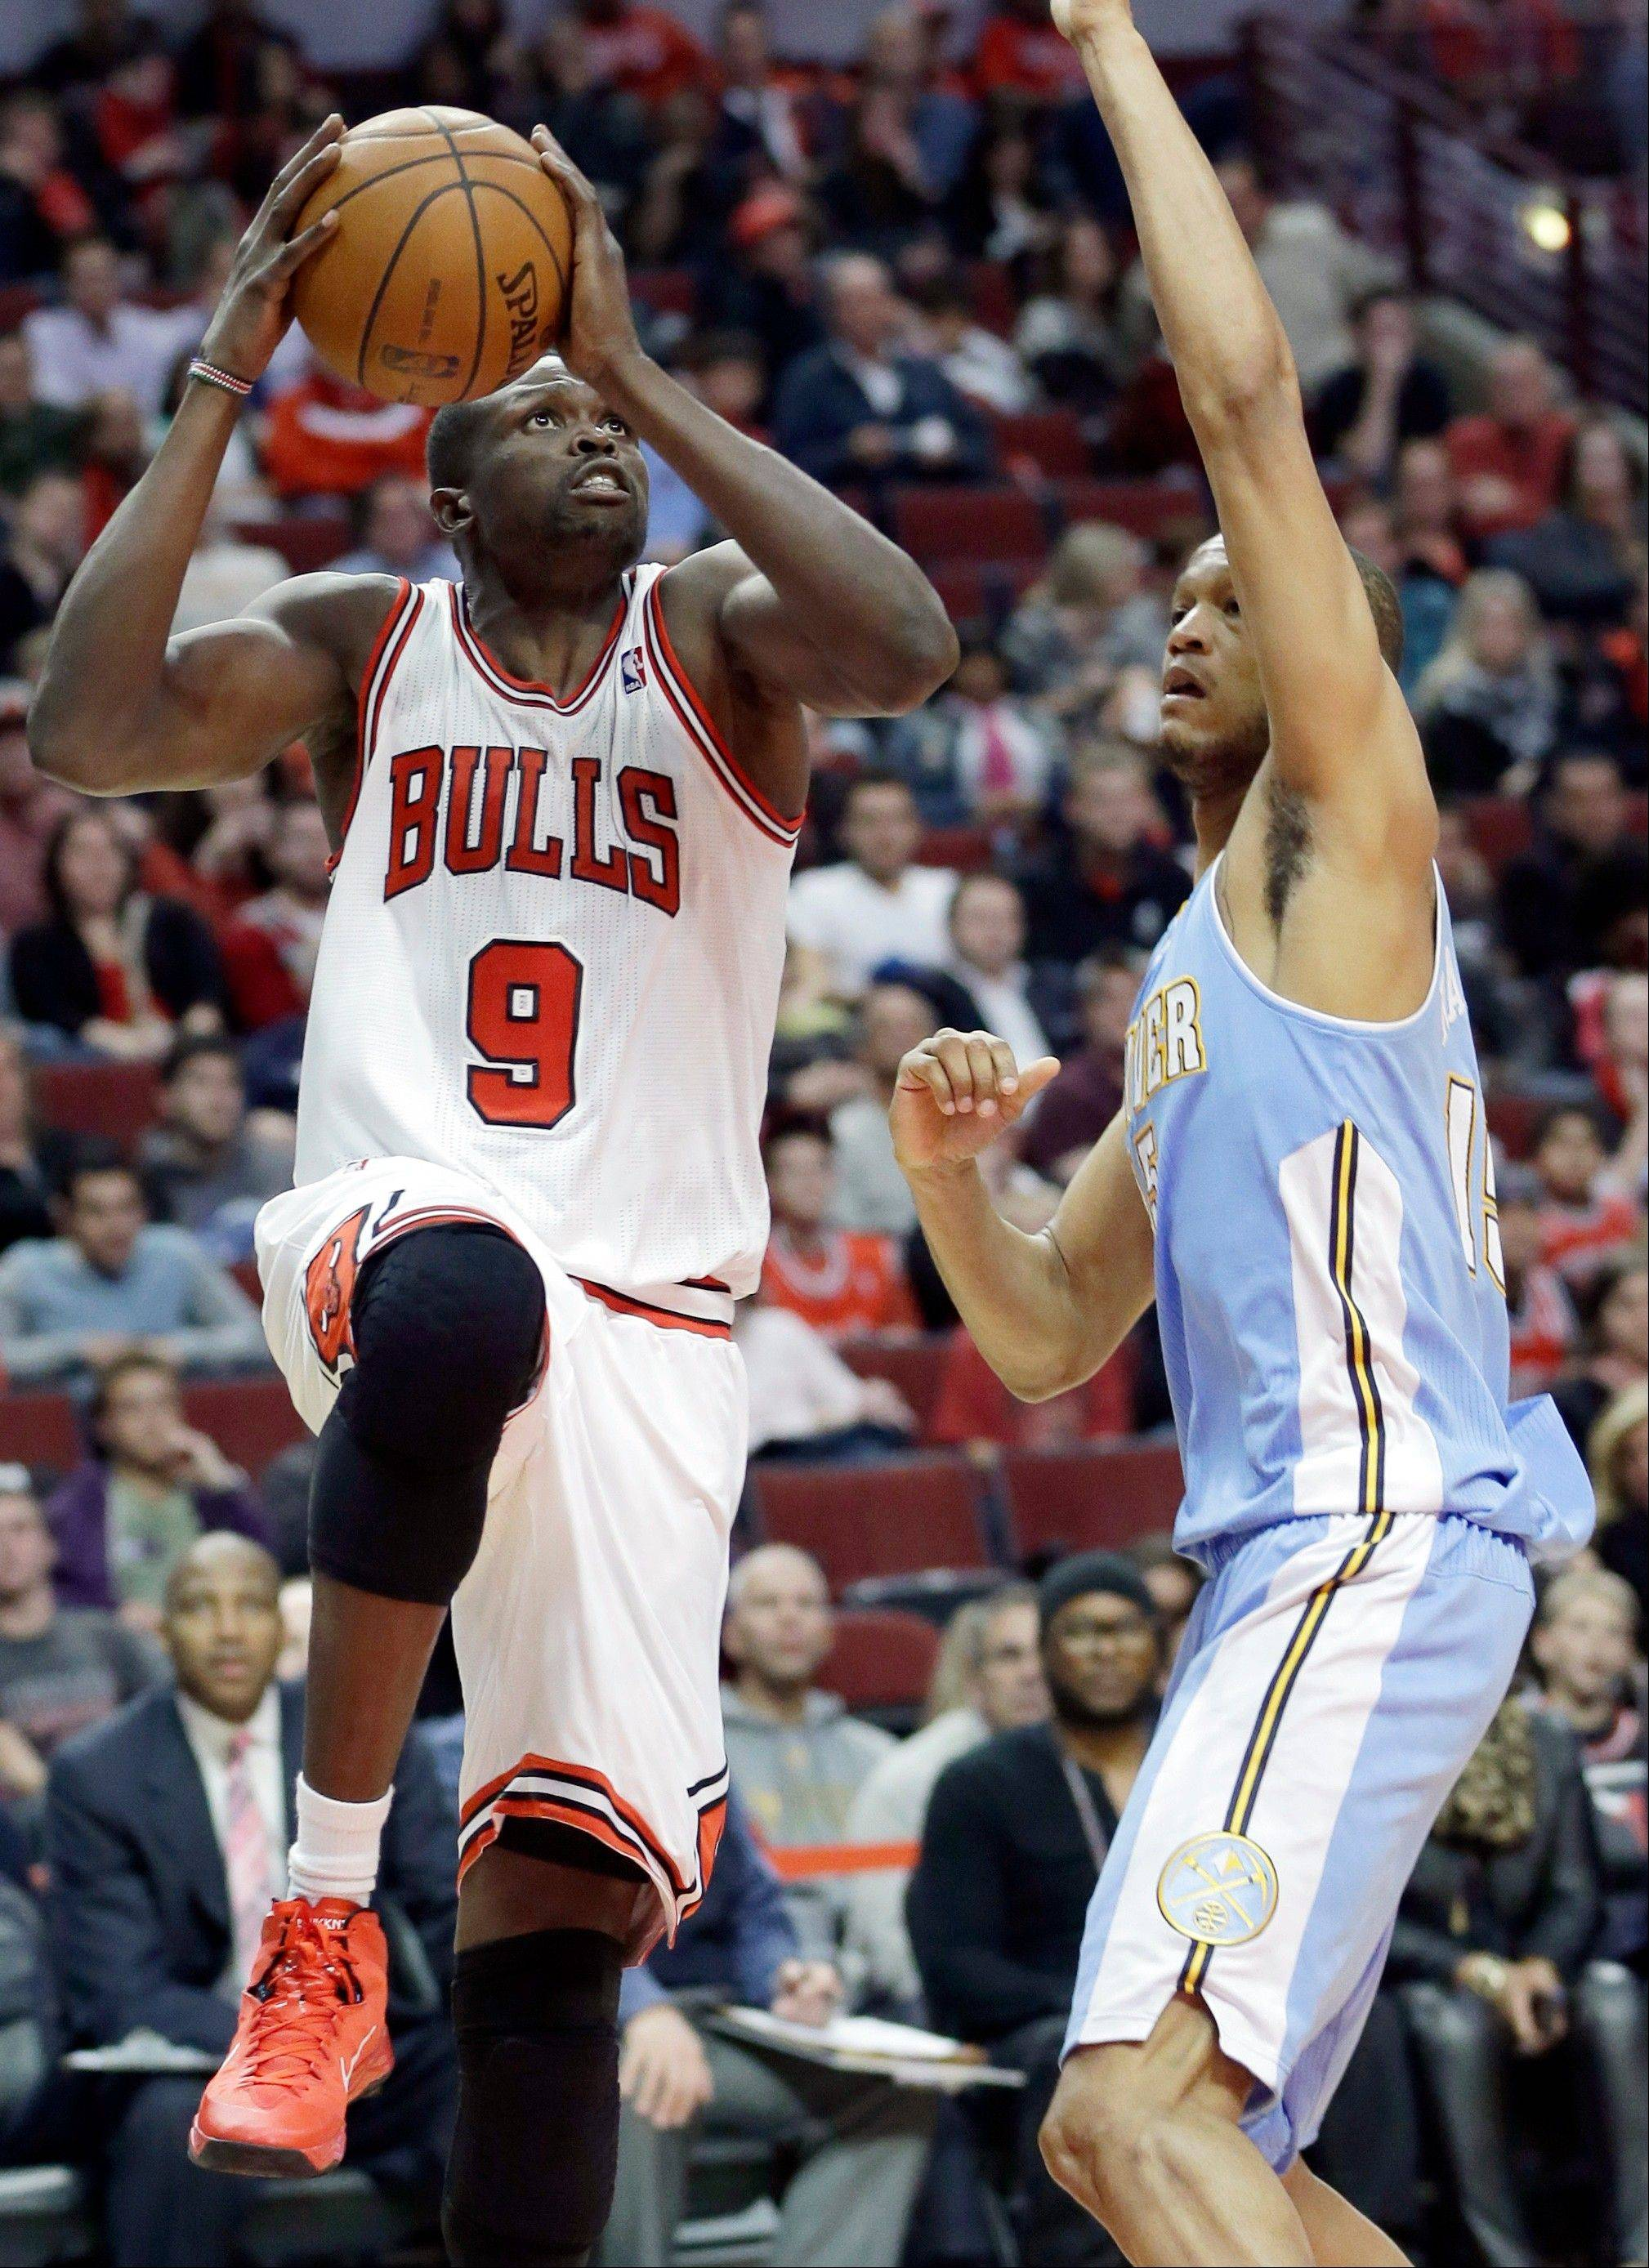 Luol Deng looked comfortable and confident on the floor as the Bulls went undefeated in the preseason.